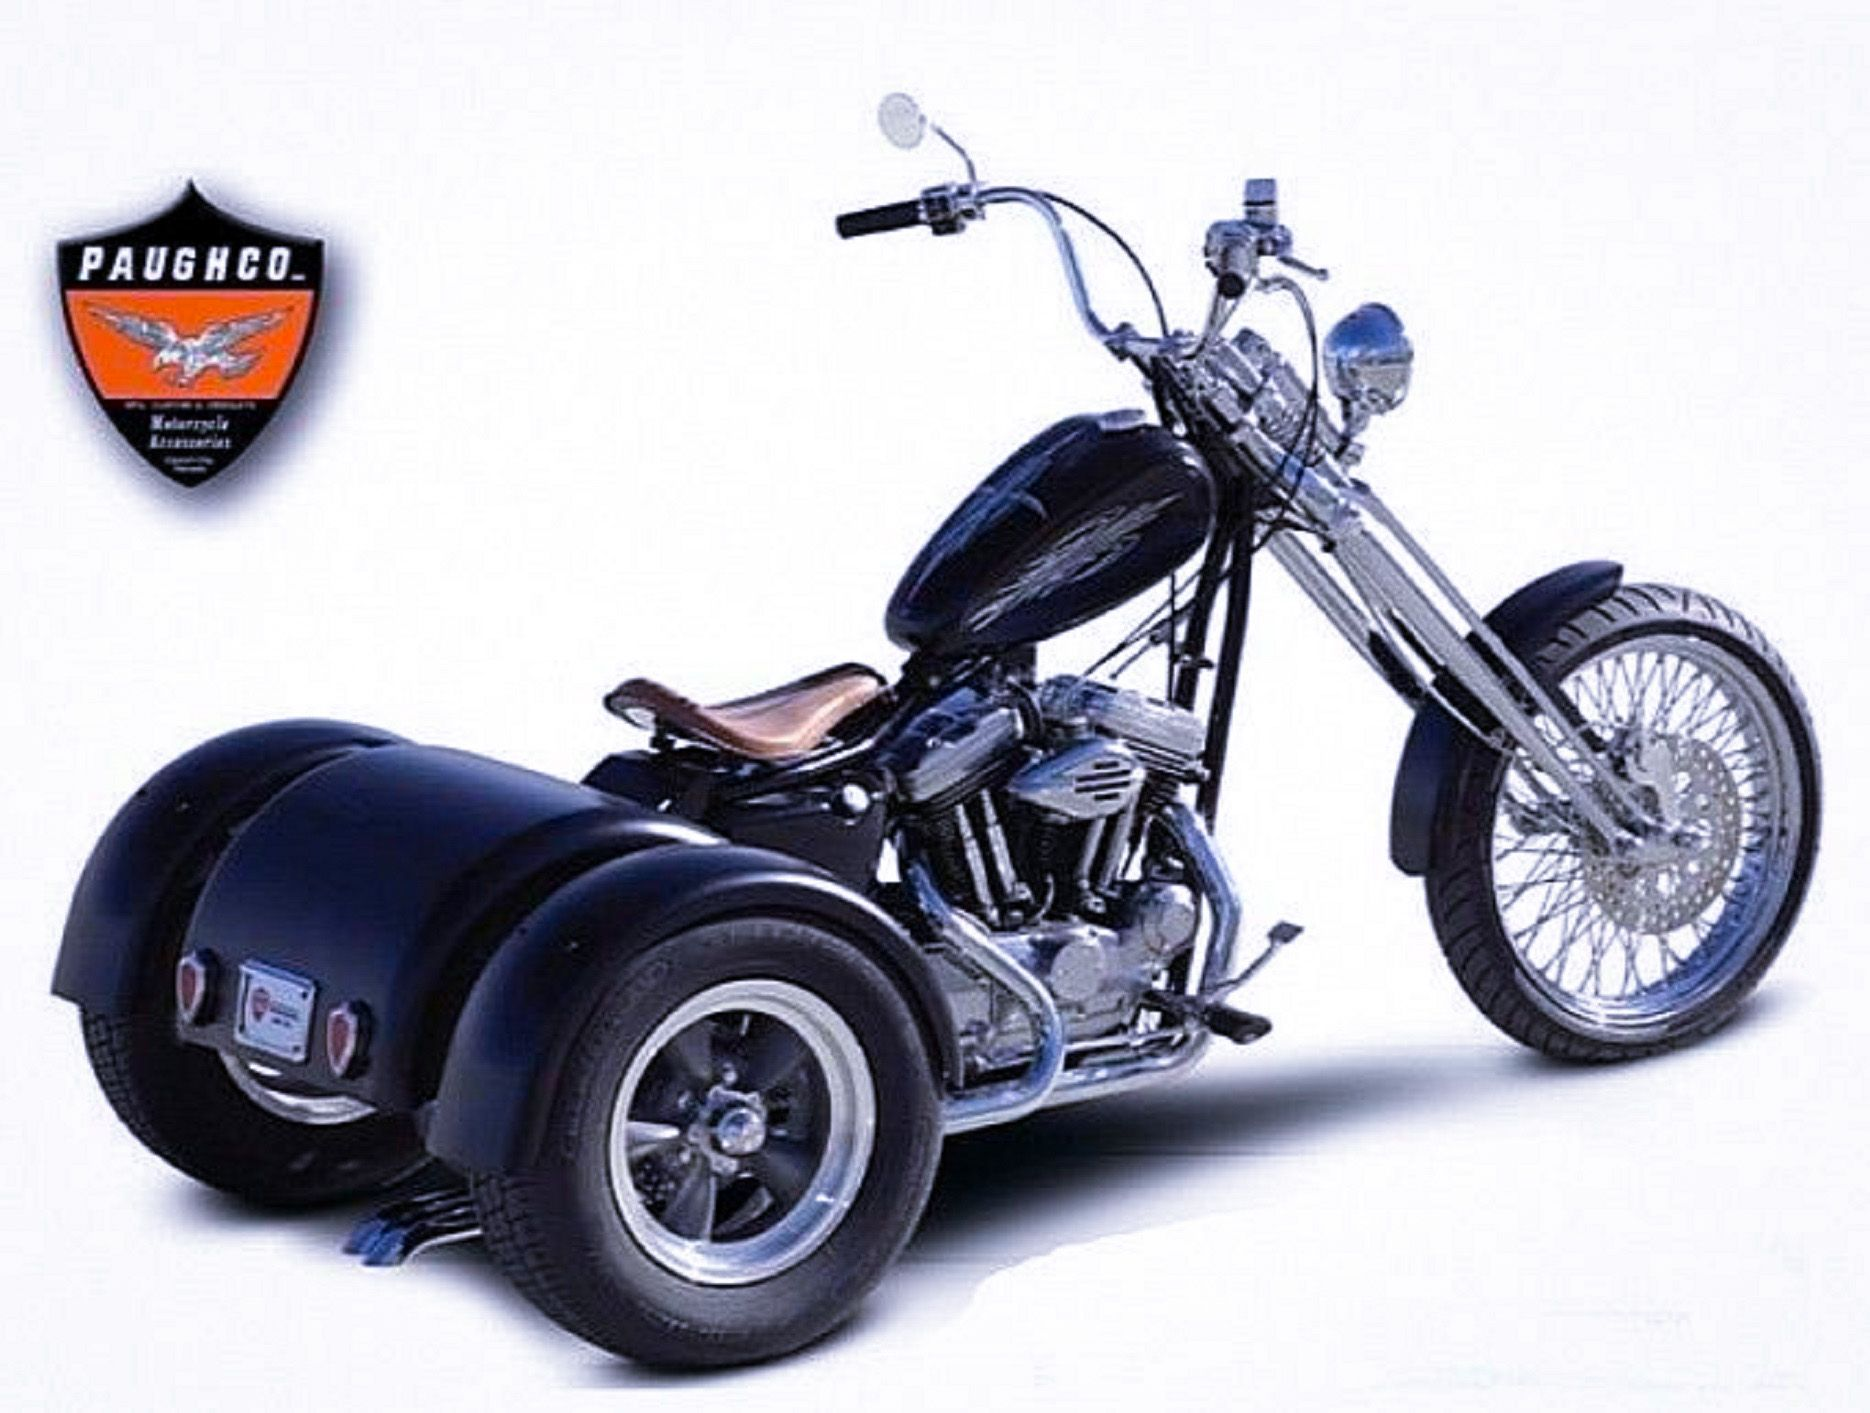 Paughco Trike Conversion Kit Http Www Paughco Com 2008 Catalog Pdf 2013 Paughco New Products Pdf Trike Kits Trike Trike Motorcycle